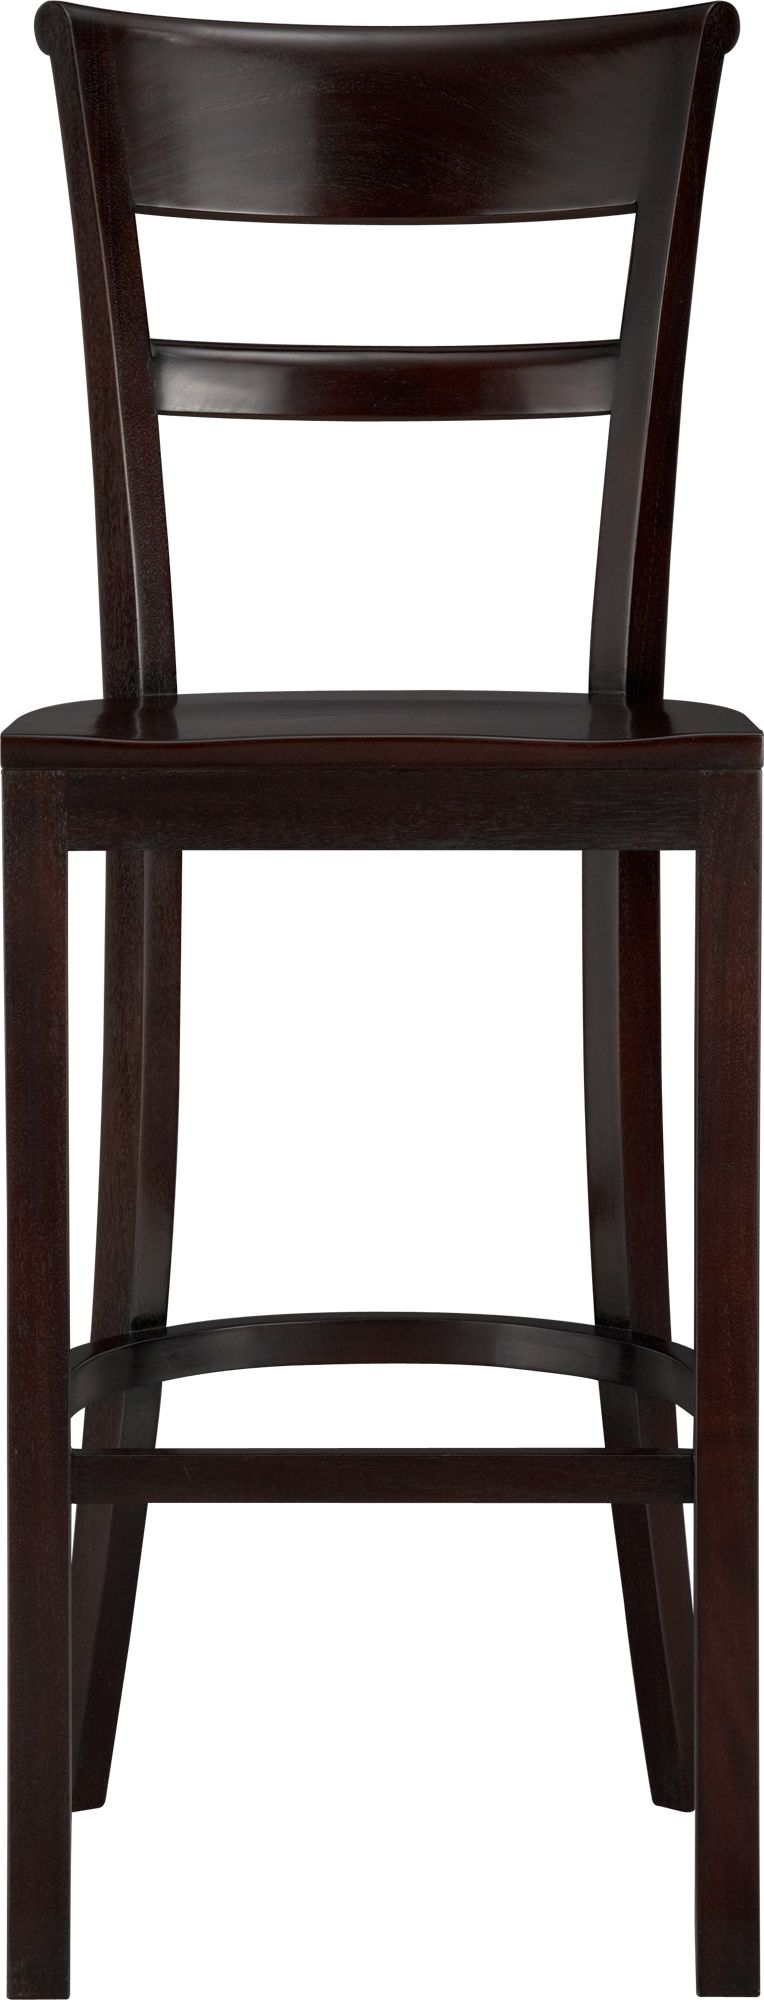 "Solid mahogany seating pulls up to bar with ease and elegance. Barstool has graceful rolled back and comfortable contours to the seat. A soft-sheen lacquer adds a finishing detail.<br /><br /><NEWTAG/><ul><li>FSC-certified solid mahogany</li><li>Clear protective lacquer finish</li><li>30""H seat sized for bars</li><li>Made in Indonesia</li></ul>"